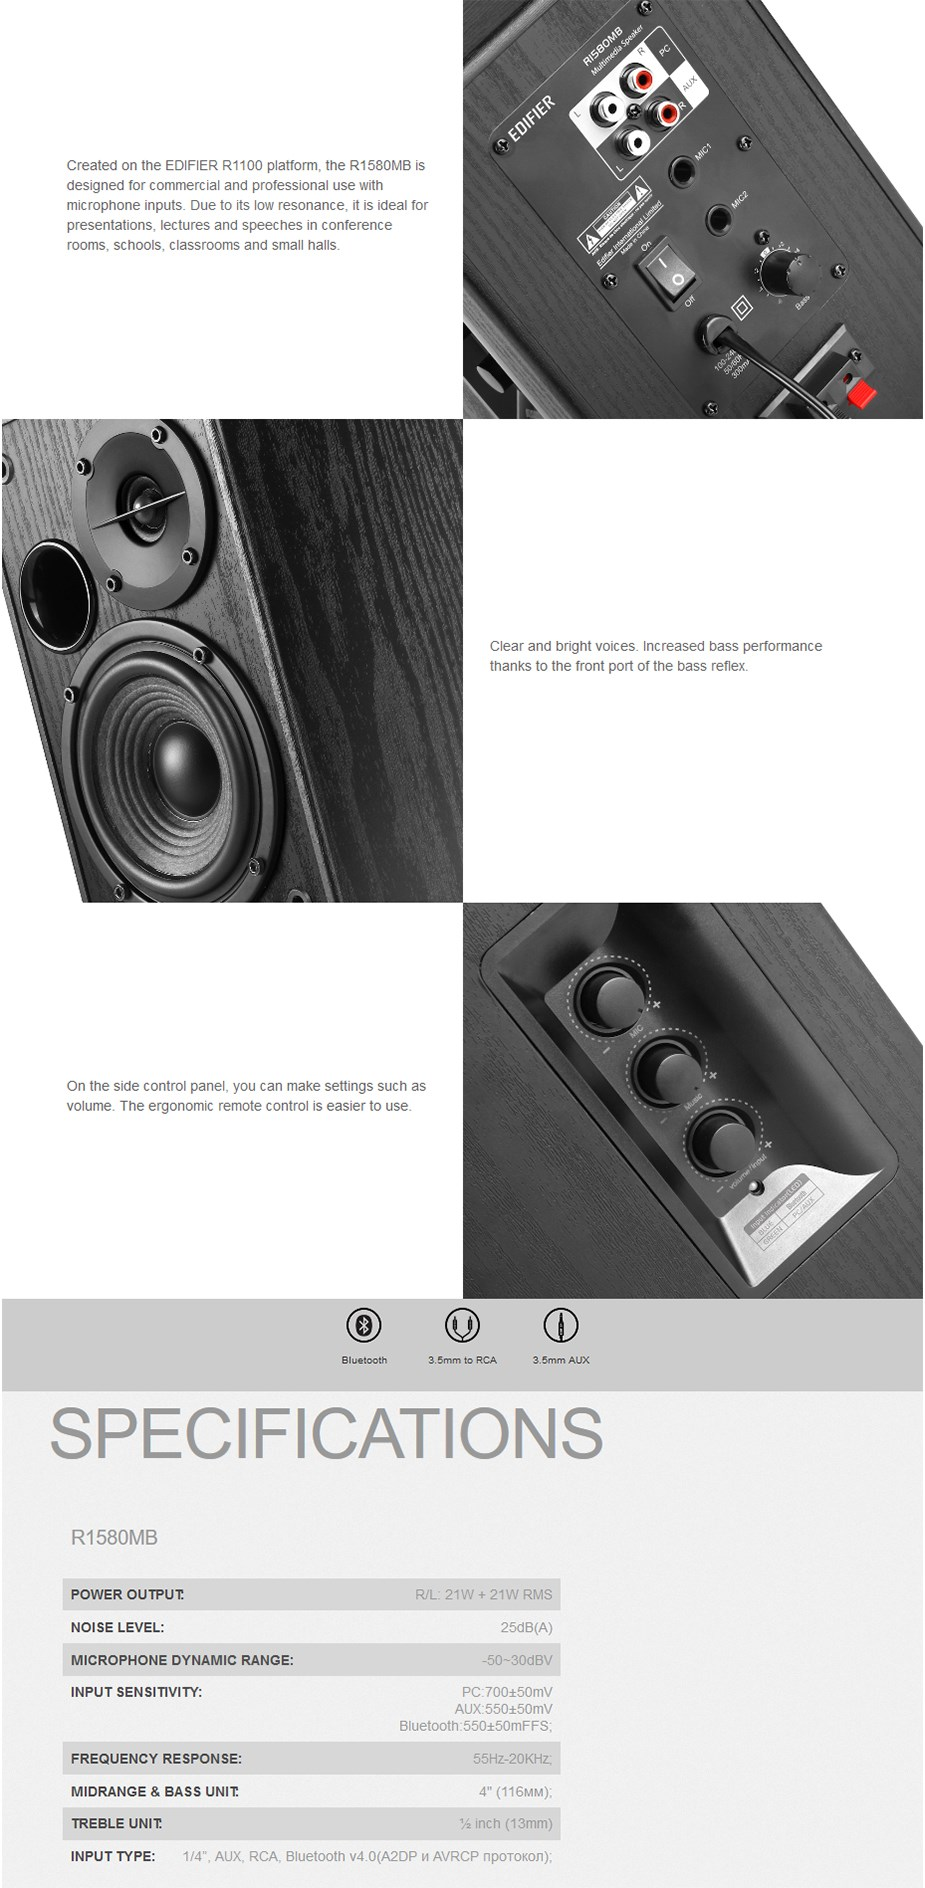 Edifier R1580MB Active 2.0 Speaker System - Overview Image 1